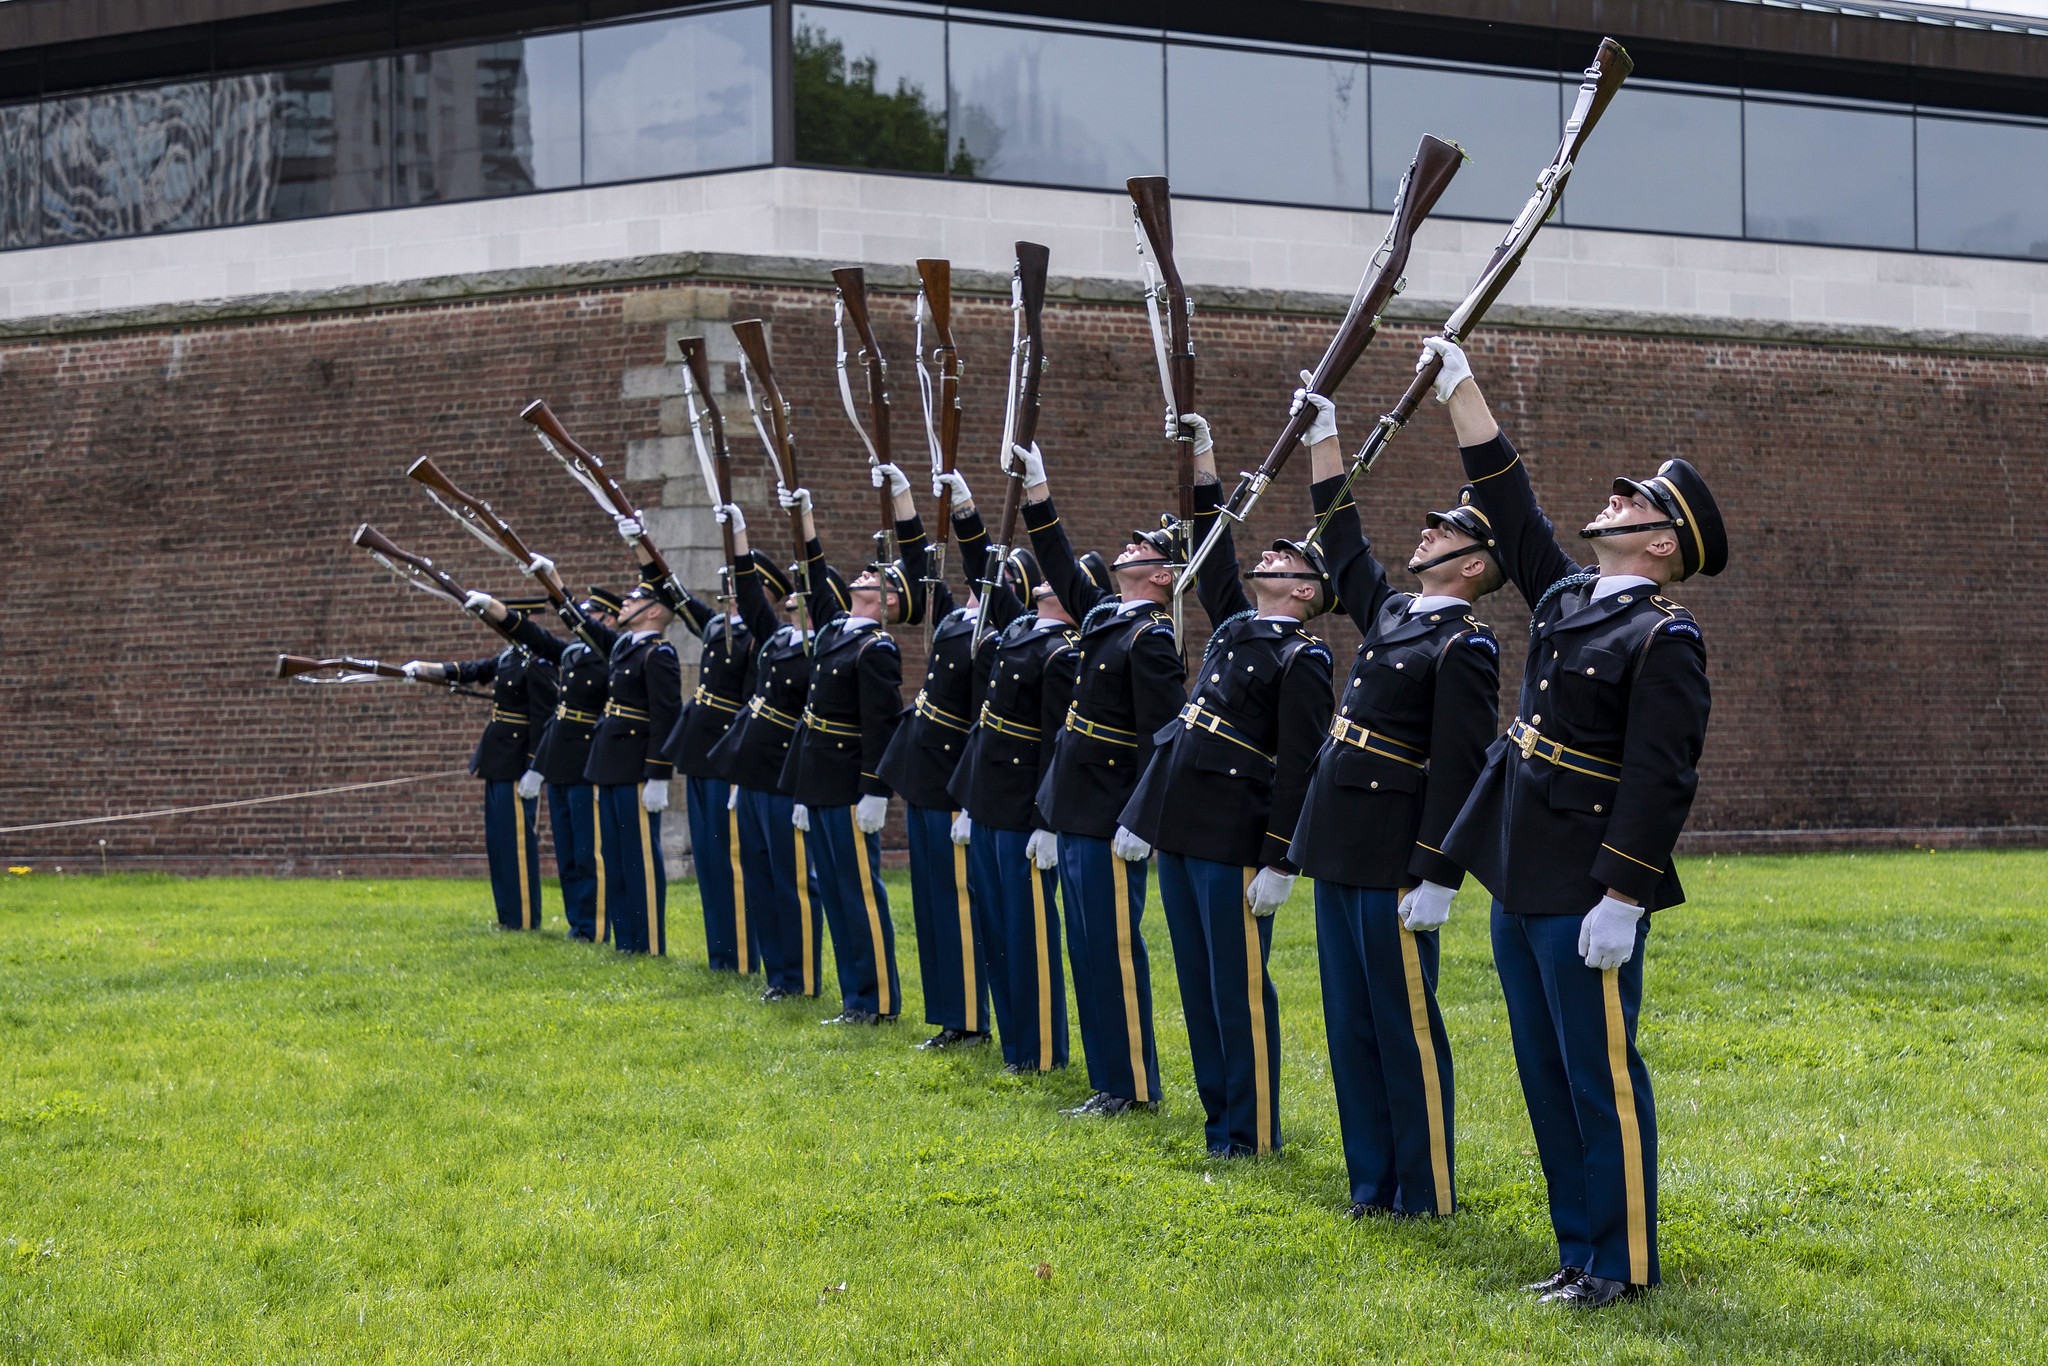 Soldiers with the U.S. Army Drill Team, 3d U.S. Infantry Regiment (The Old Guard), conduct a performance during the Meet Your Army event at Point State Park, Pittsburgh, Pa., May 4, 2019. (Staff Sgt. Dalton Smith/Army)